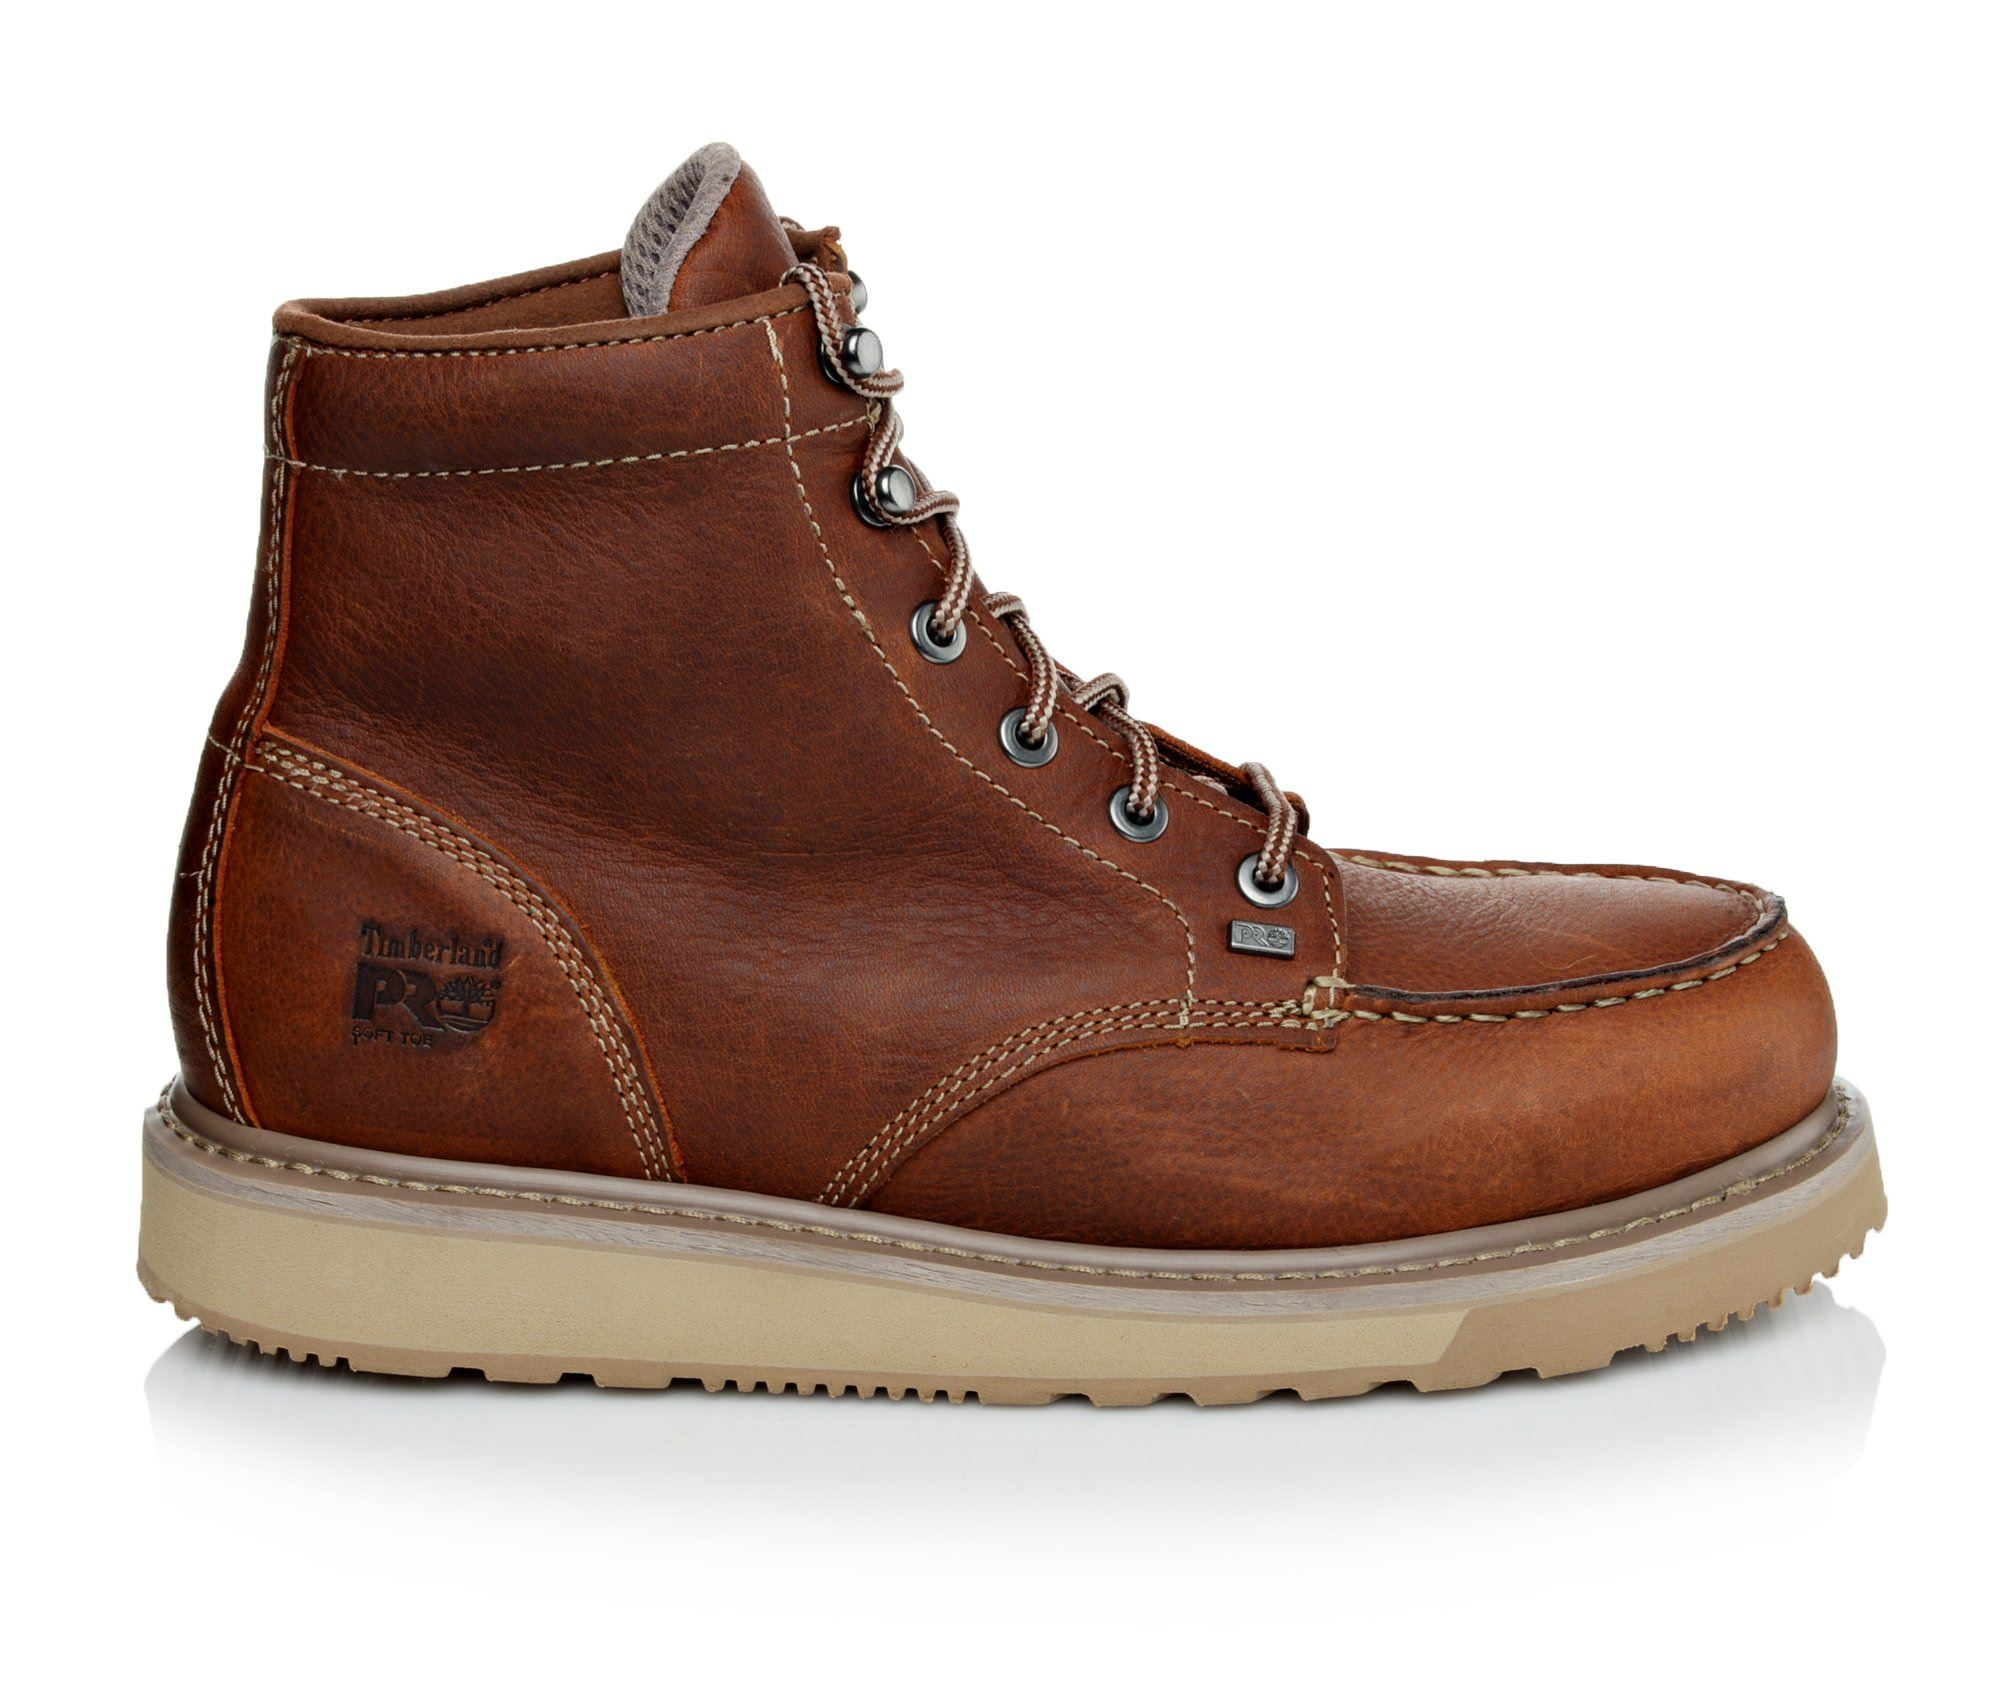 Timberland Pro Barstow Wedge Men's Boots (Brown Leather)